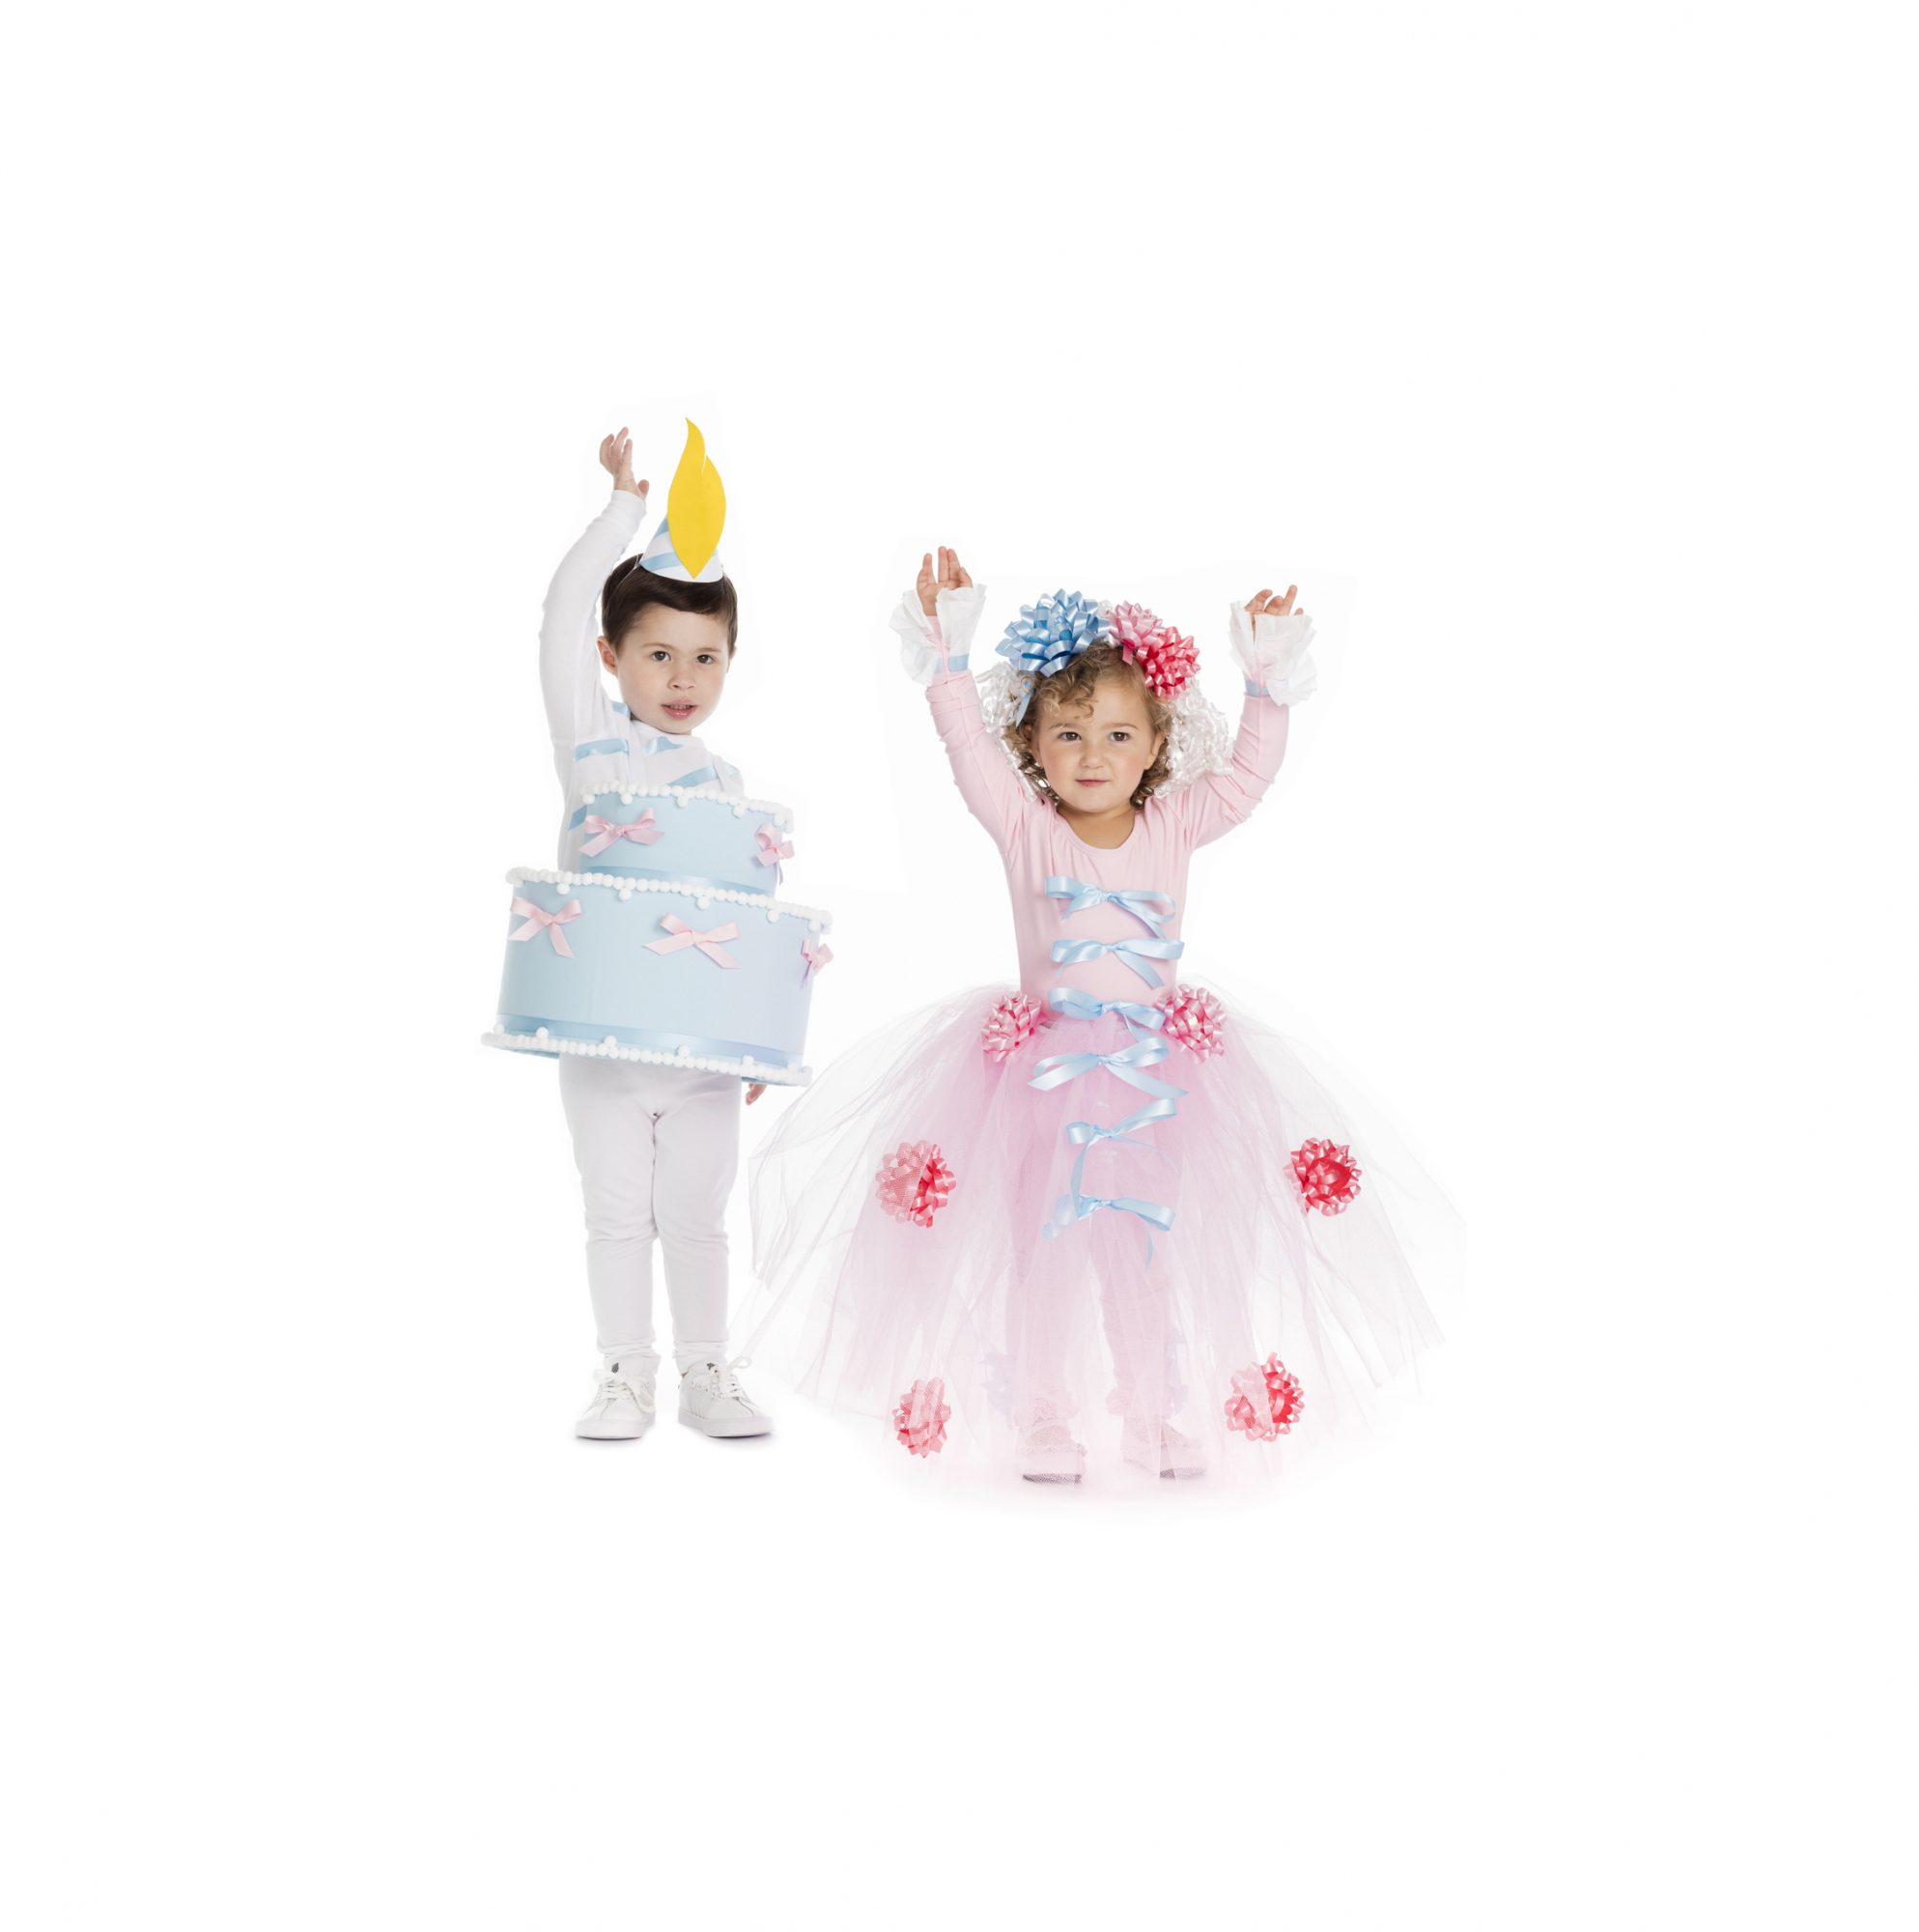 Group Halloween costumes - Marie Antoinette and cake